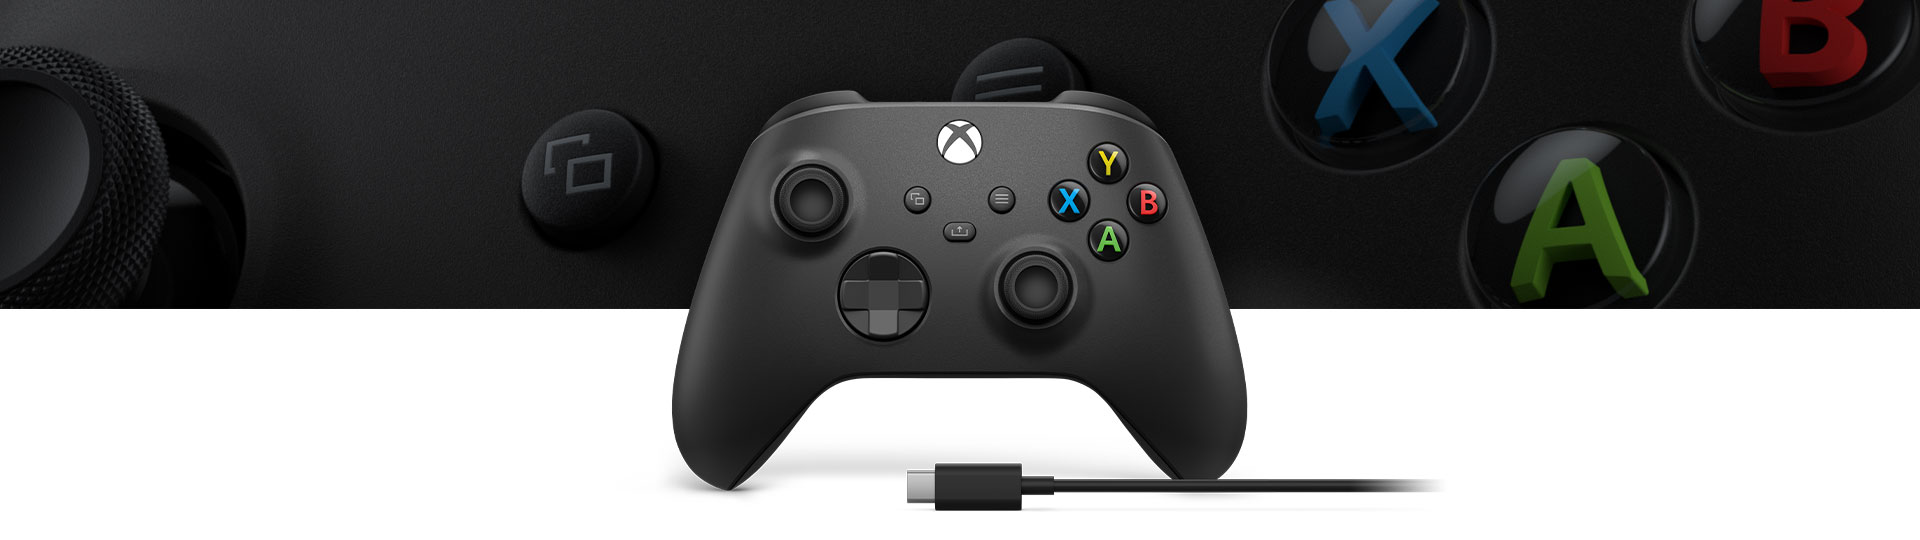 Xbox Wireless Controller + USB-C® Cable with a close-up of controller surface texture